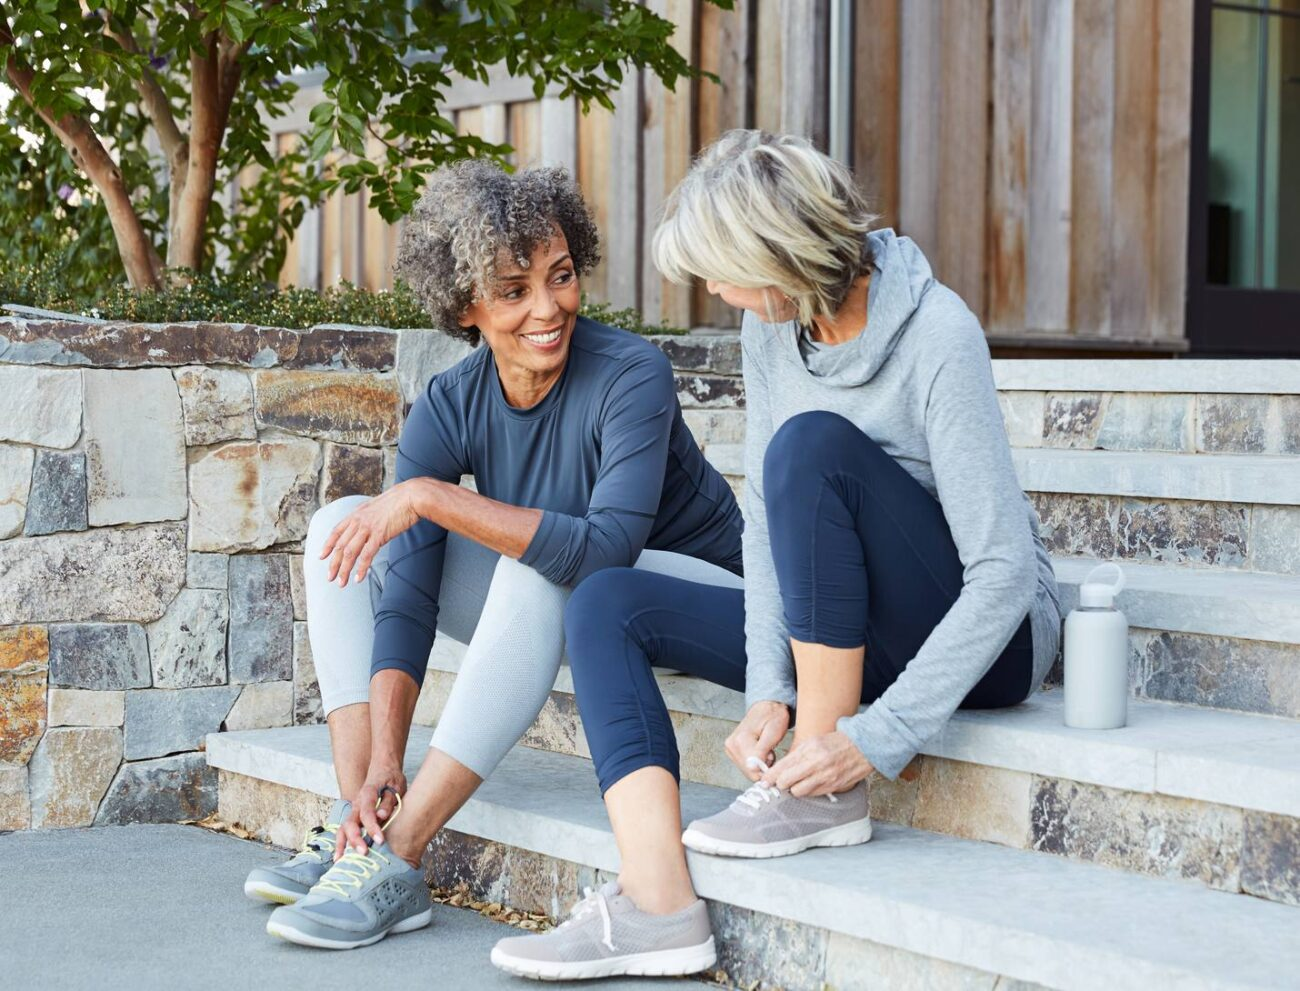 Meeting new people can be tougher after you turn 50. Here are some tips on how to meet new people as you get older.